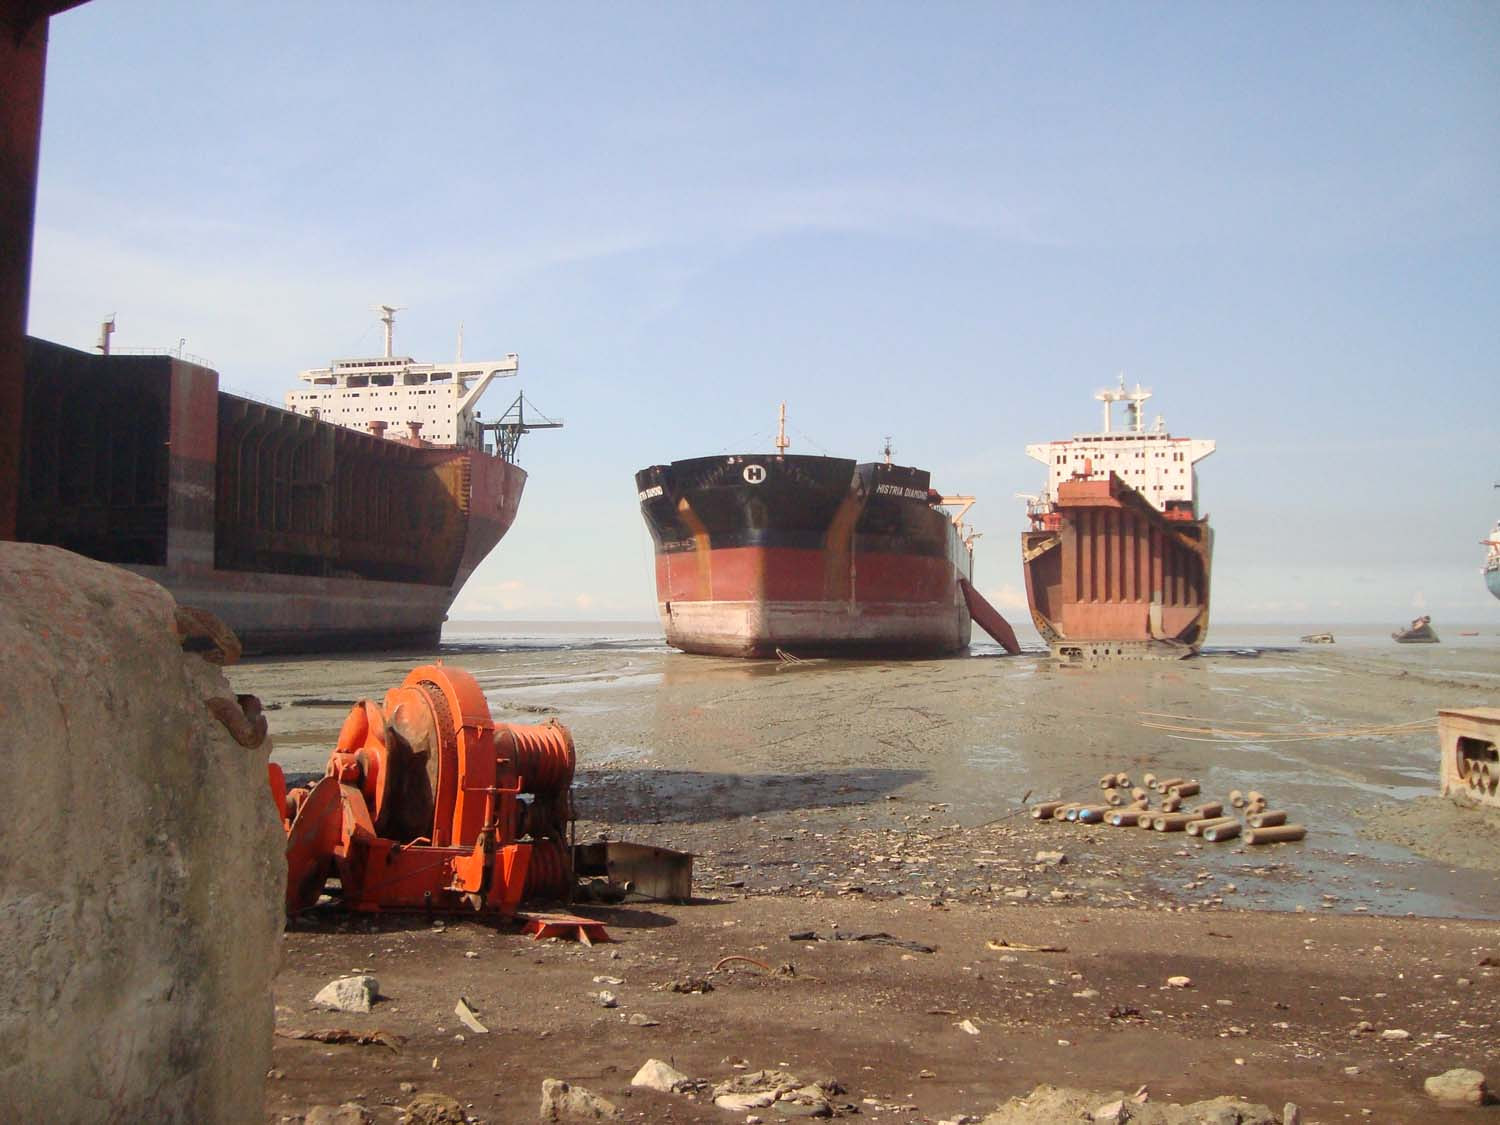 shipbuilding industry of bangladesh The shipbuilding industry expects better business ahead as demand from domestic market is picking up, shipbuilders said orders from international buyers resumed with the recovery of the global economy after several years in the doldrums, they said, adding that the blue economy has also opened a.